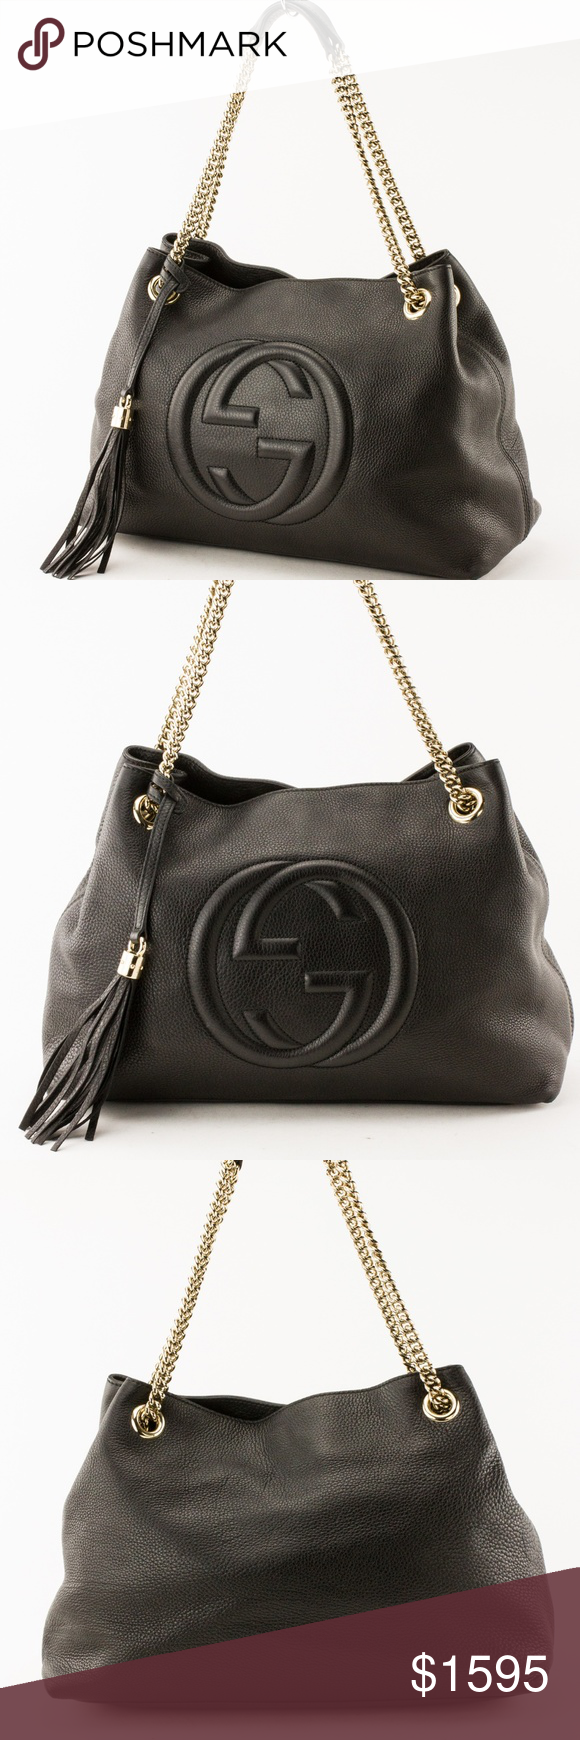 2a67222b14 Gucci Black Leather Soho Gold Chain Strap Tote Bag Gucci Black Leather Soho Chain  Strap Tote